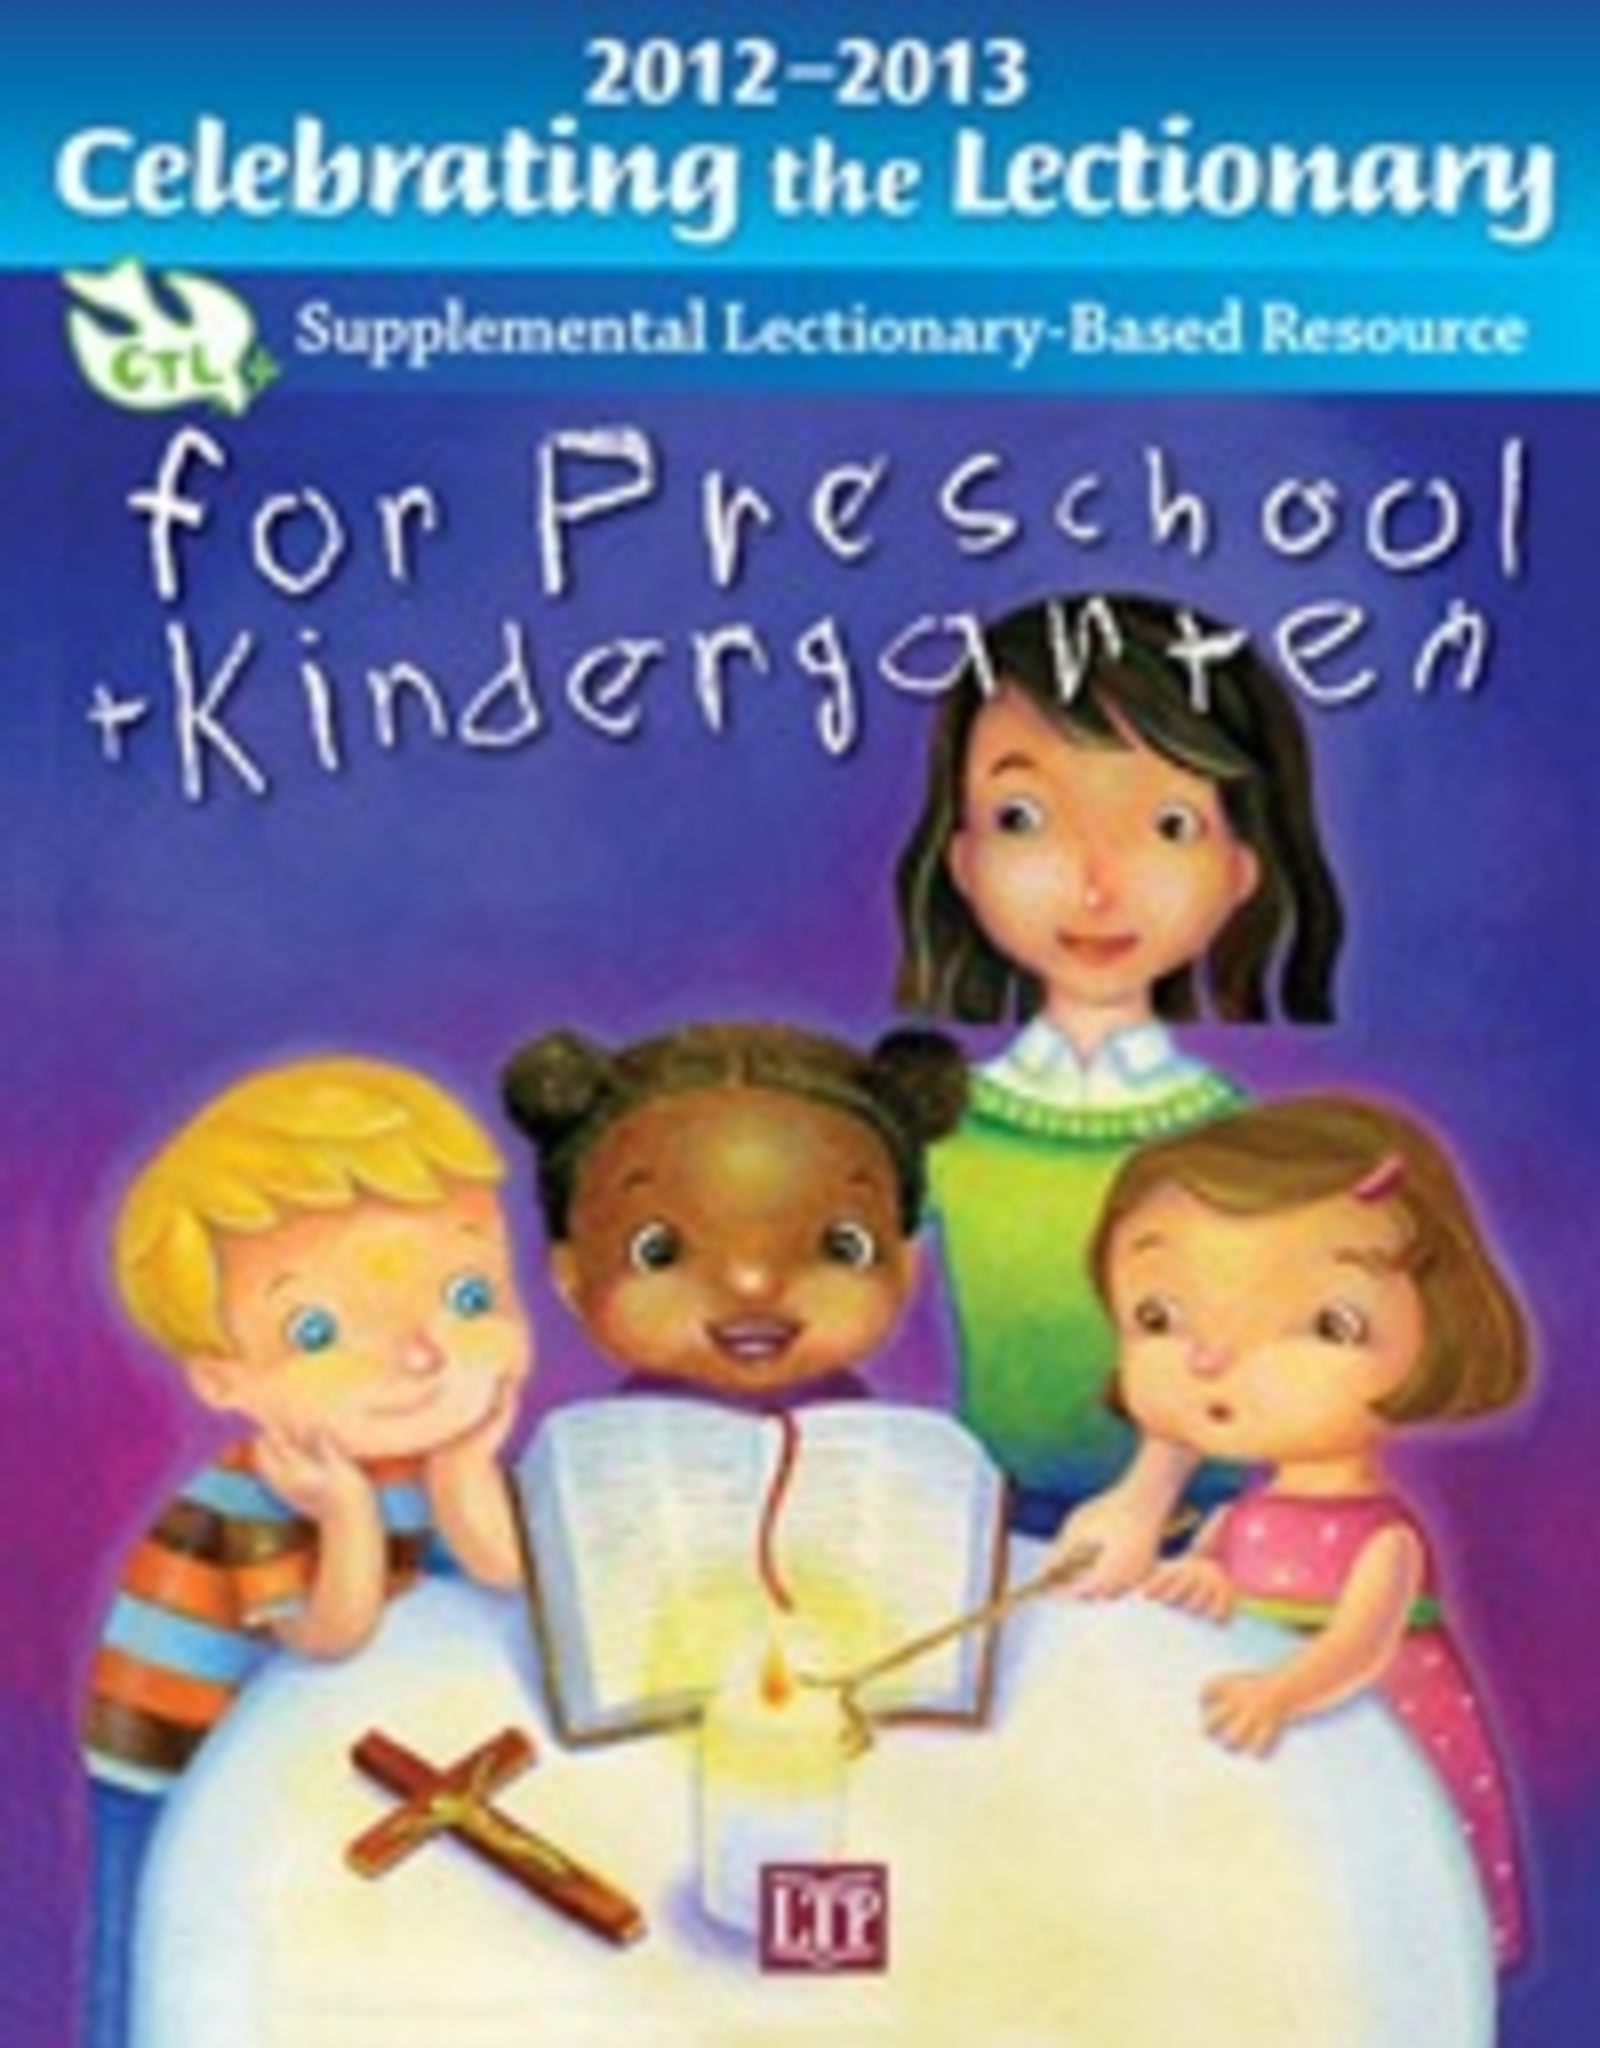 Liturgical Training Press Celebrating the Lectionary for Preschool and Kindergarten 2012-2013:  Supplemental Lectionary-based Resource, by Rosanne Masters Thomnas (paperback)